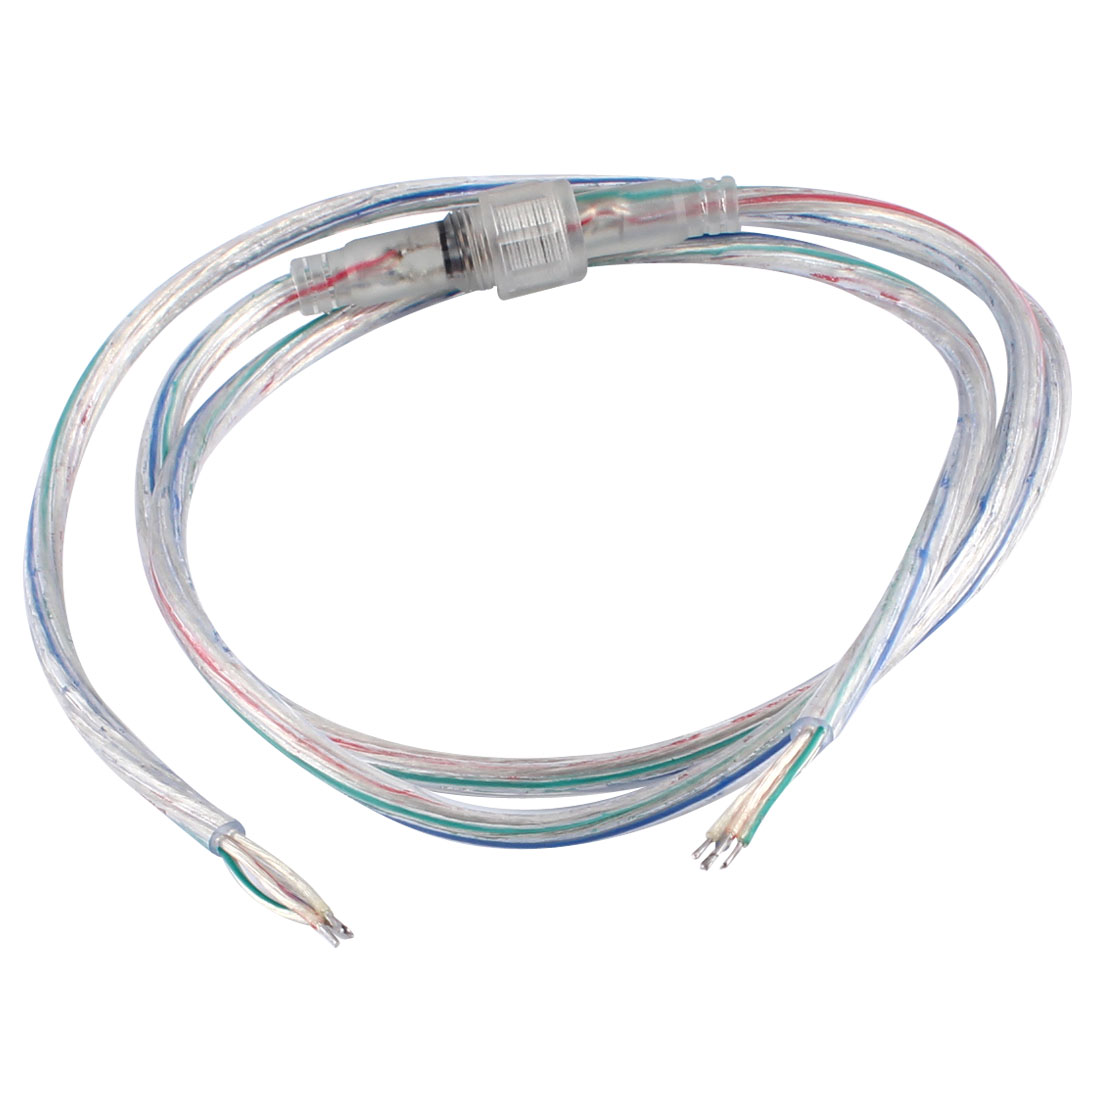 Male-Female-LED-Strip-Light-4-Pin-Waterproof-Extention-Cable-Wire-1M